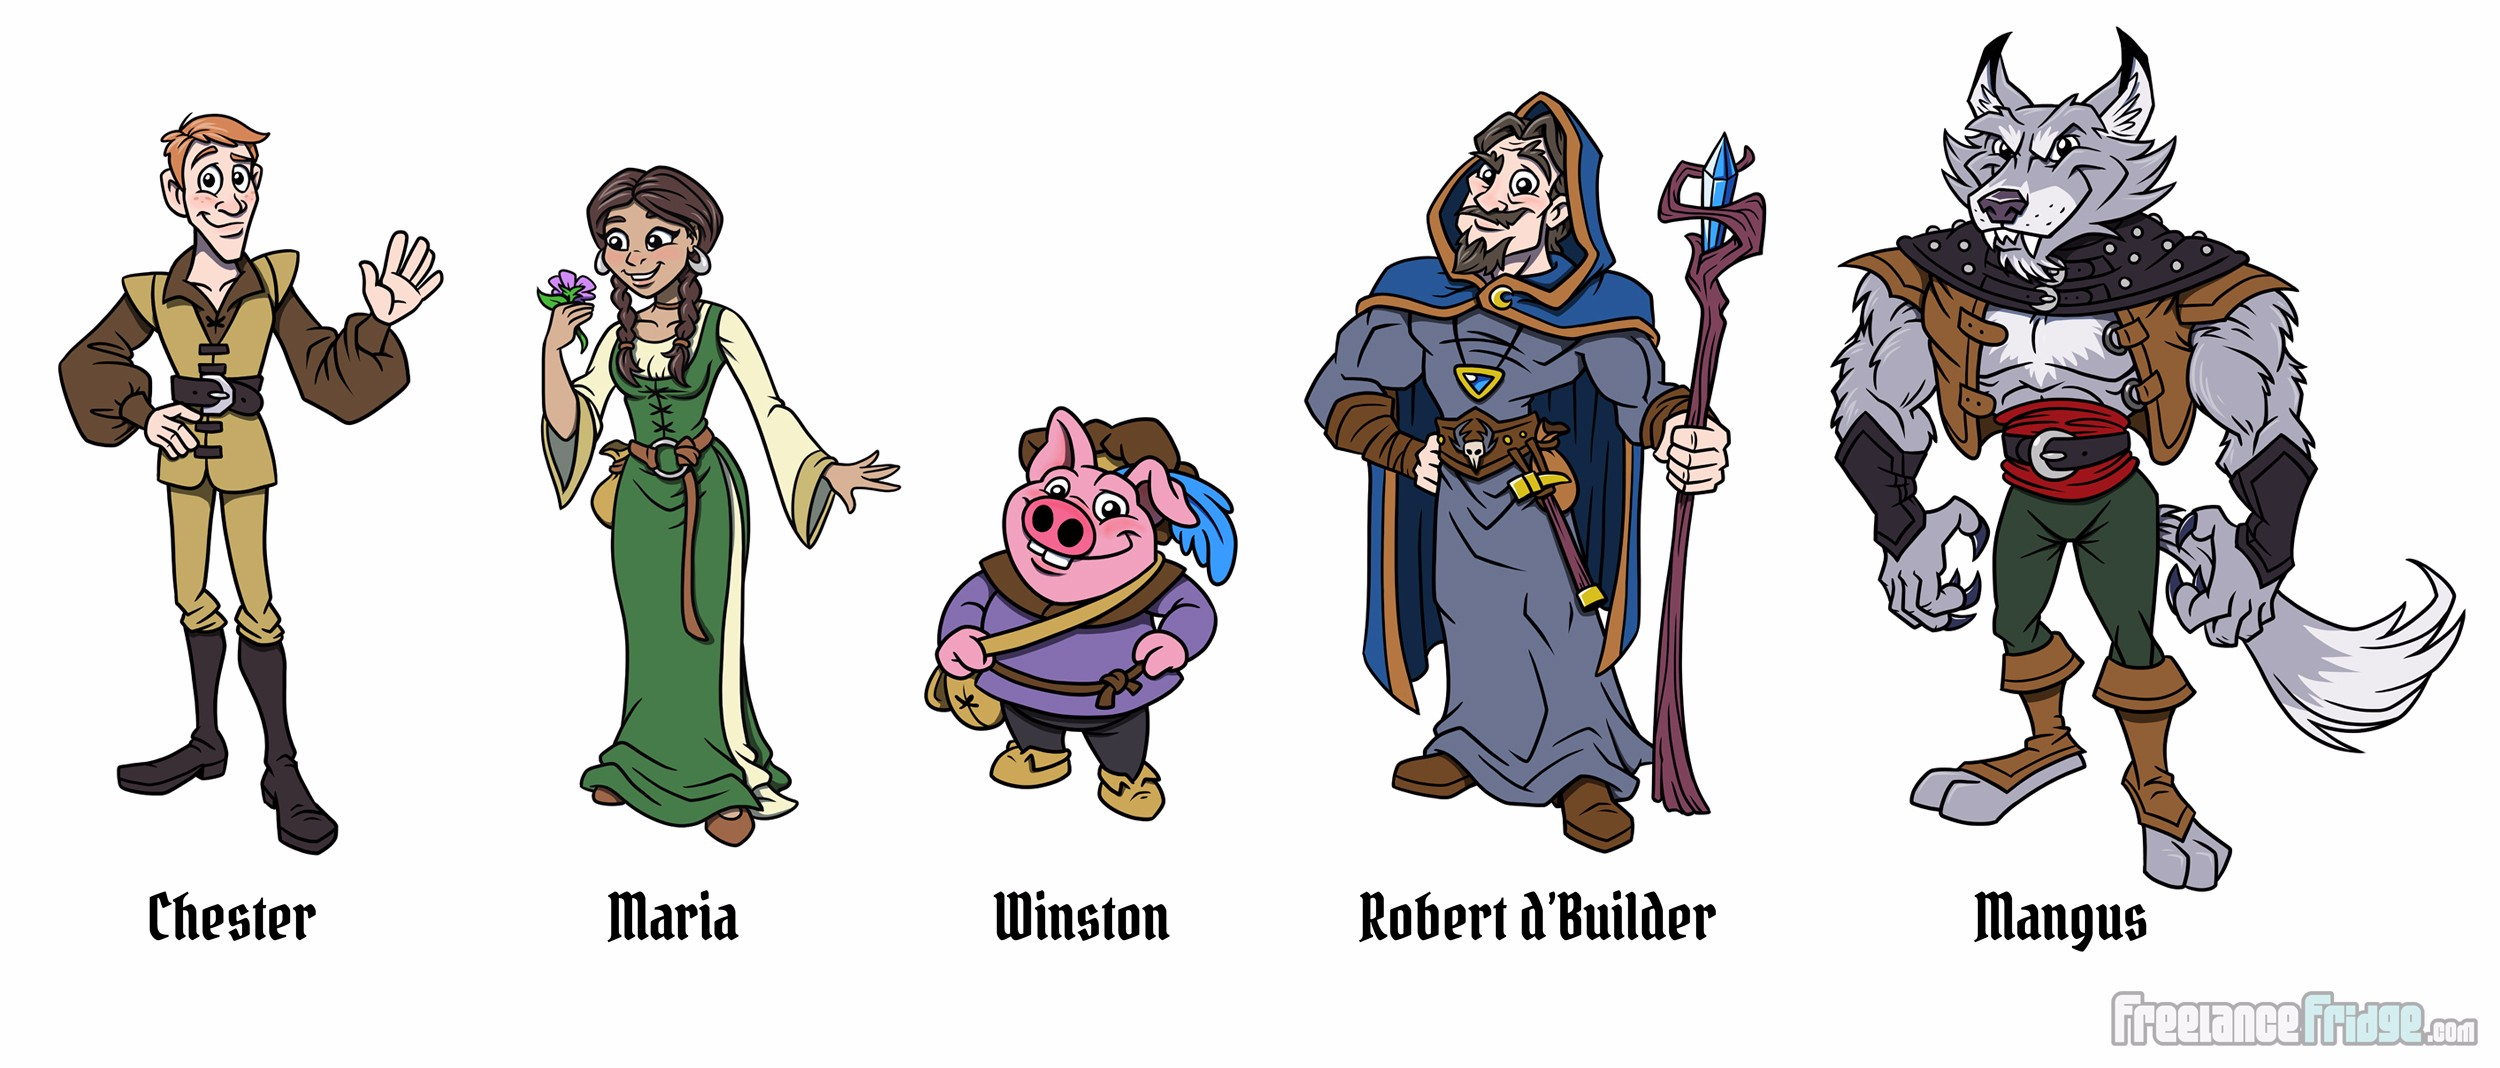 Fantasy Fairy Tale Character Designs for Cartoon Comic Book